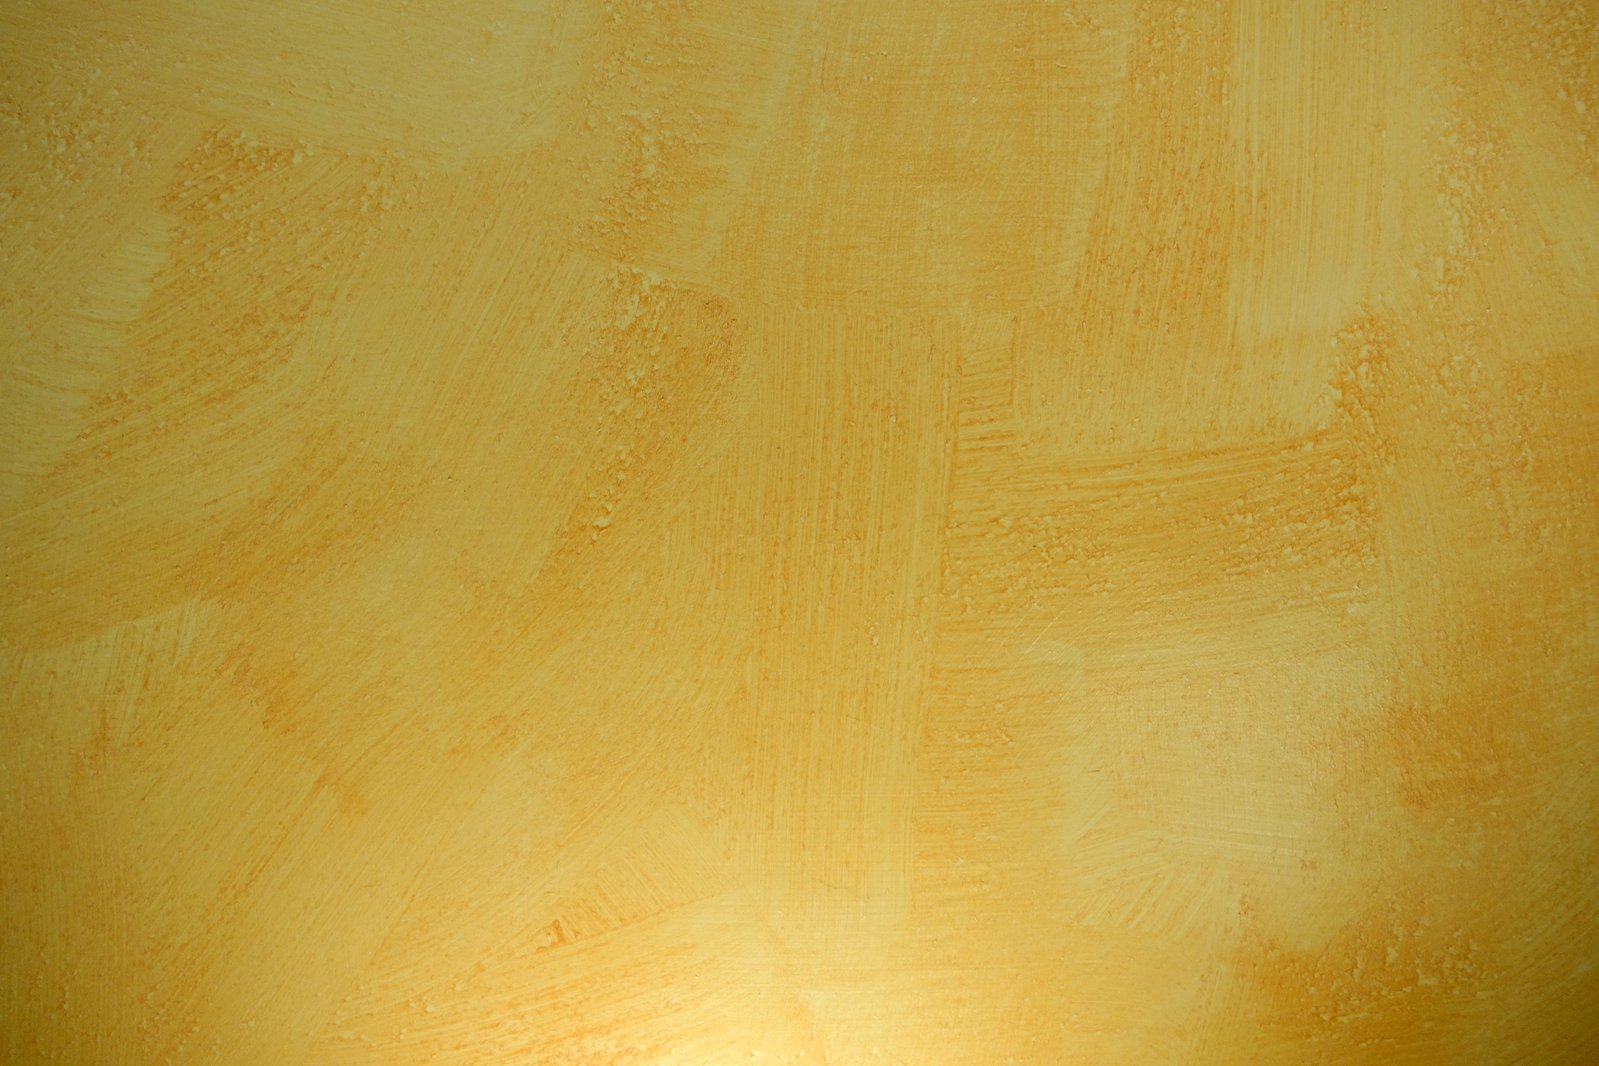 Free yellow paint texture Stock Photo - FreeImages.com